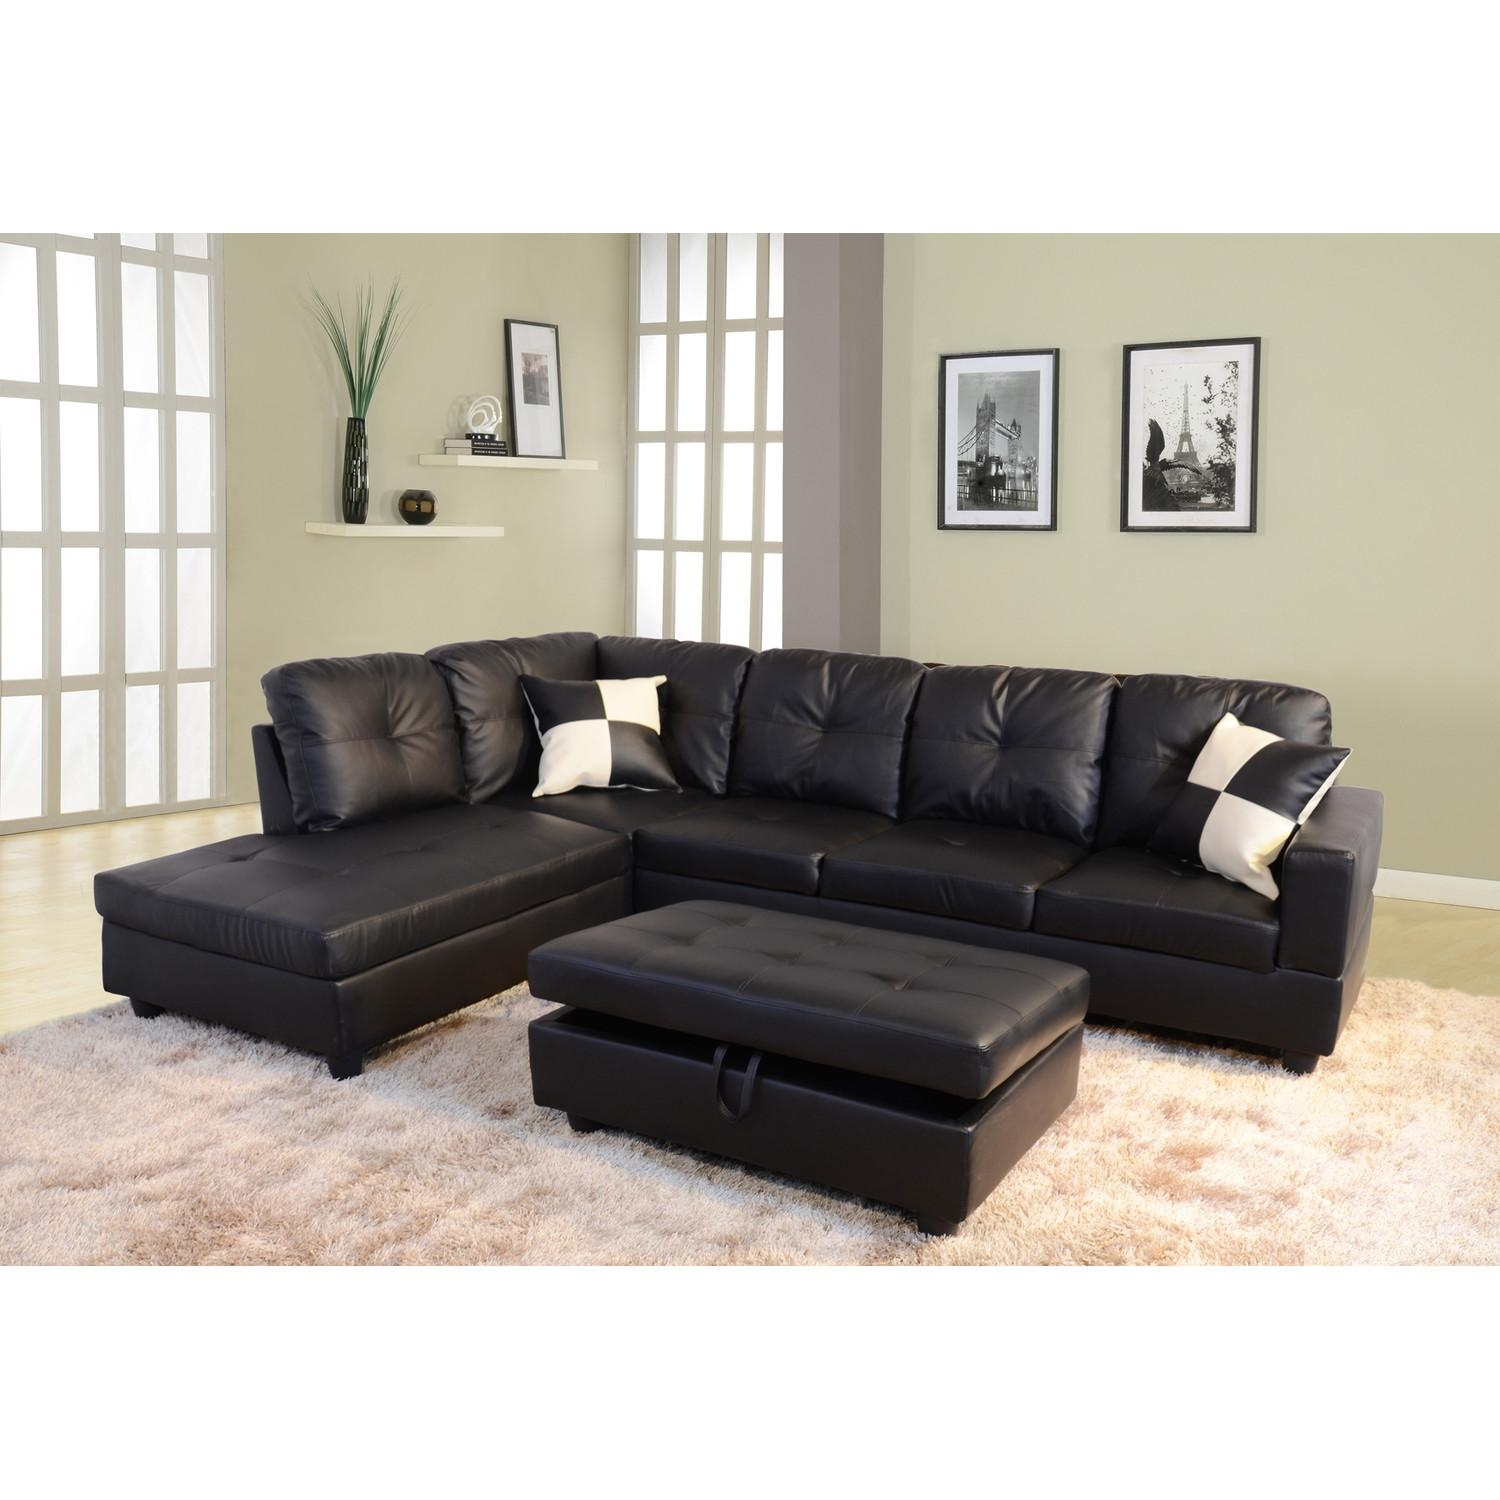 Furniture: Macys Sectional | Velvet Sectional Sofa | Leather Regarding Macys Sectional (Image 9 of 20)